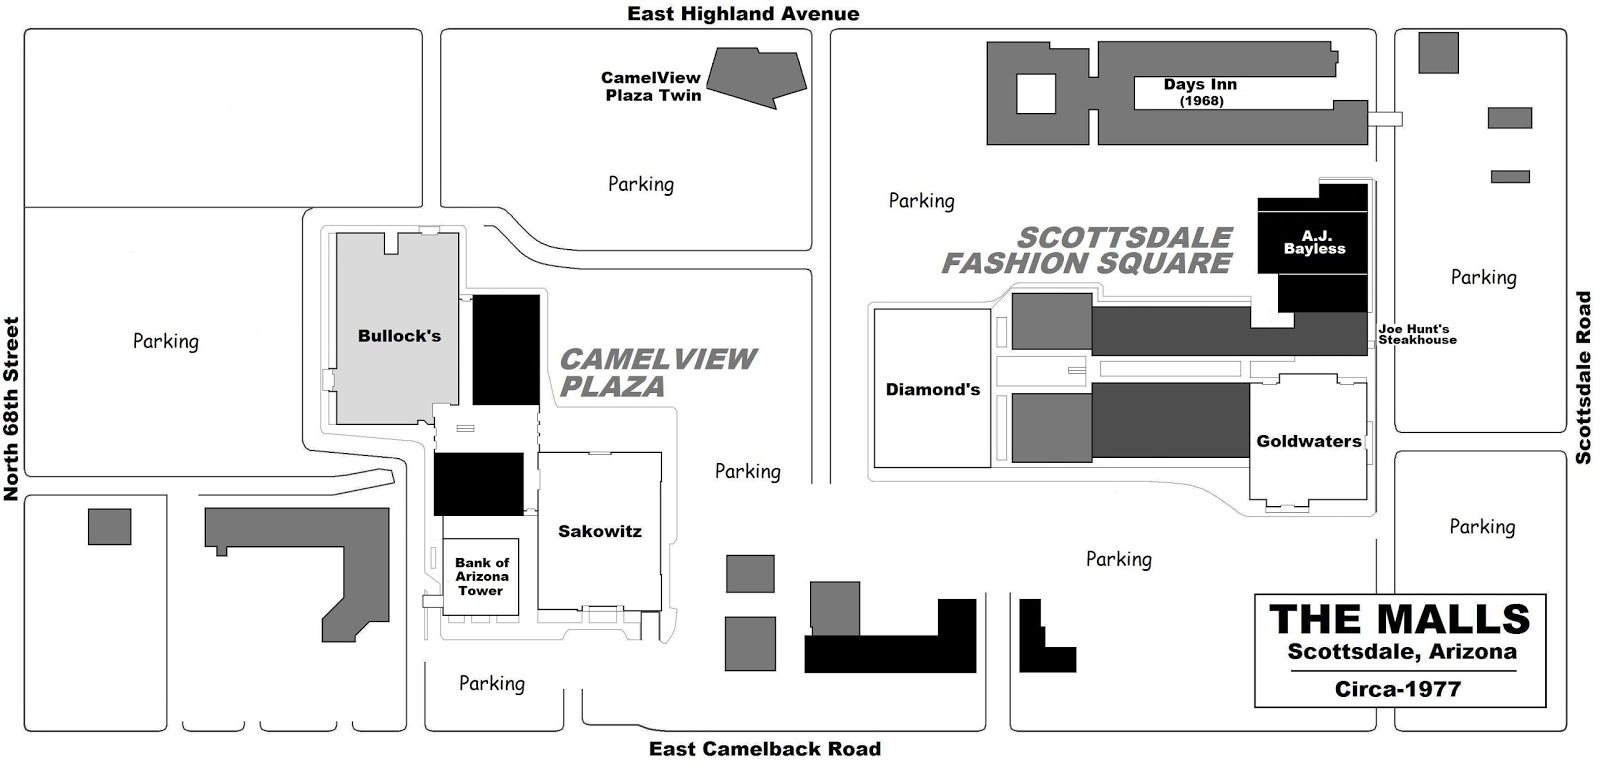 A Circa 1977 Plan Showing Two Adjacent Shopping Centers SCOTTSDALE FASHION SQUARE Originated With Five Store Plaza In Black An Open Air Mall Dark